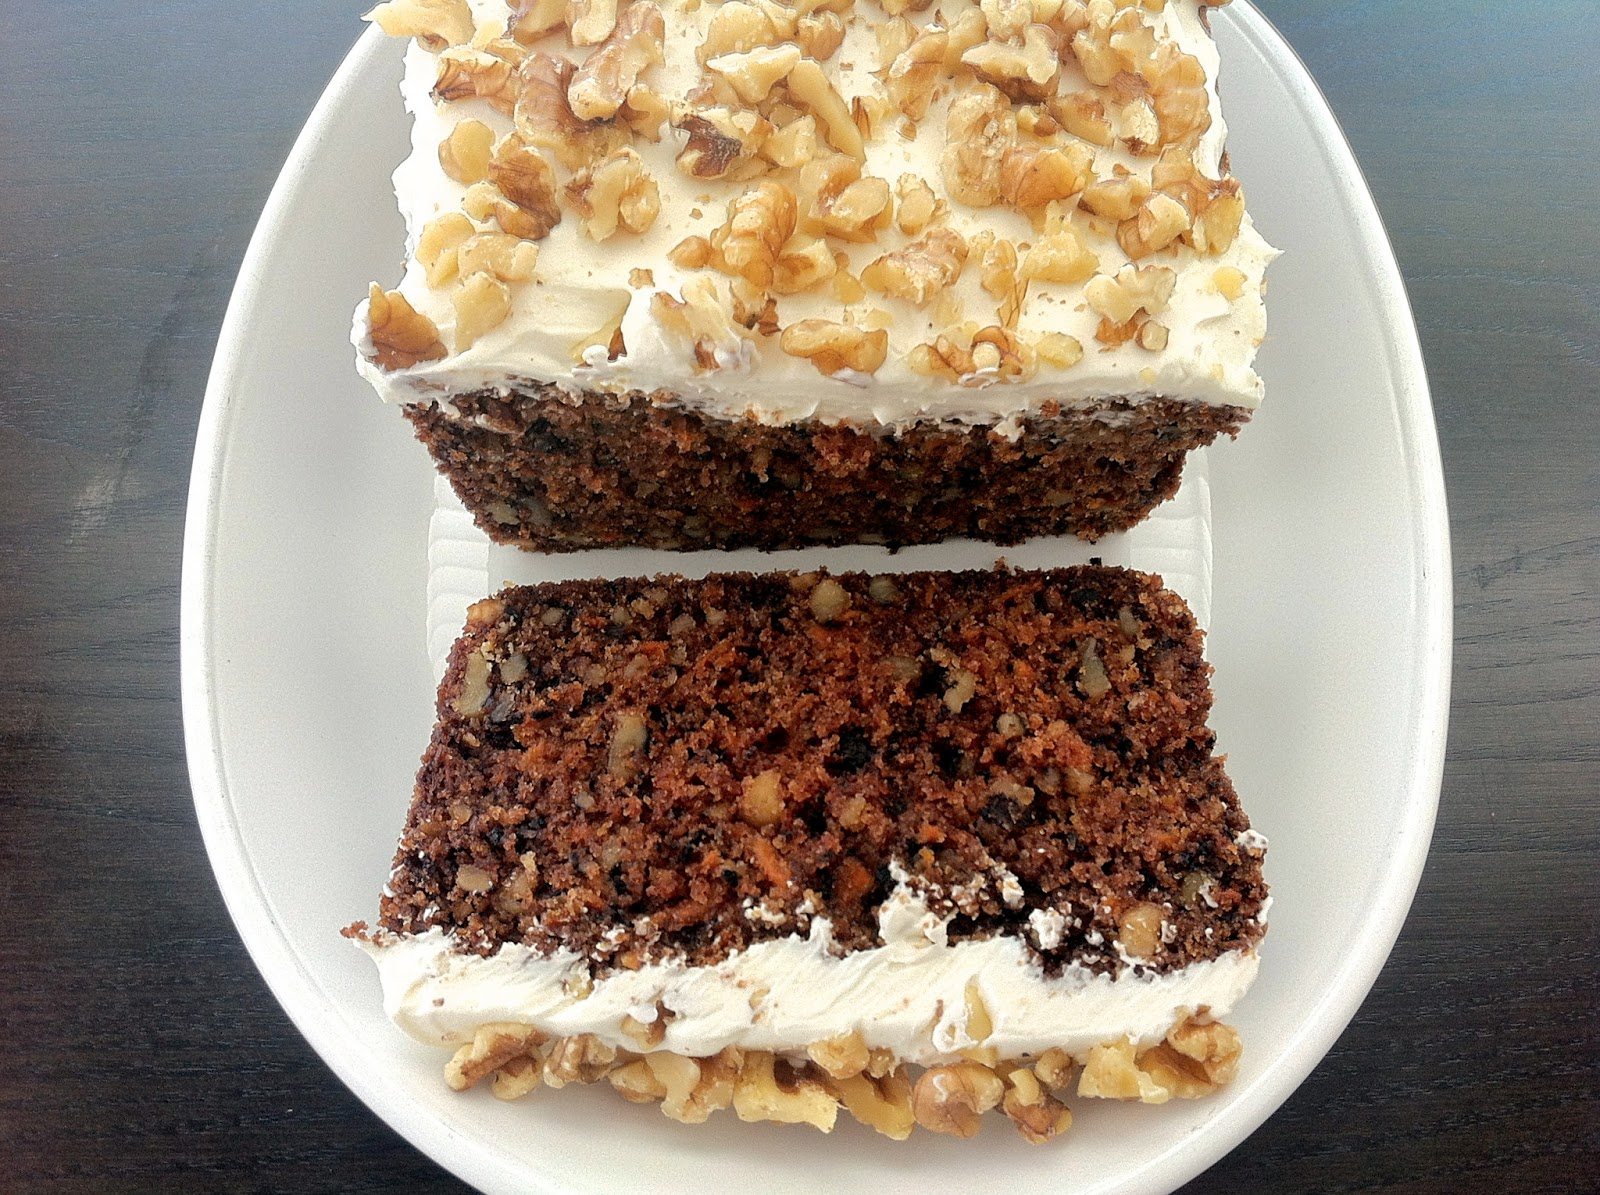 Healthier Carrot Cake with Cream Cheese and Walnuts